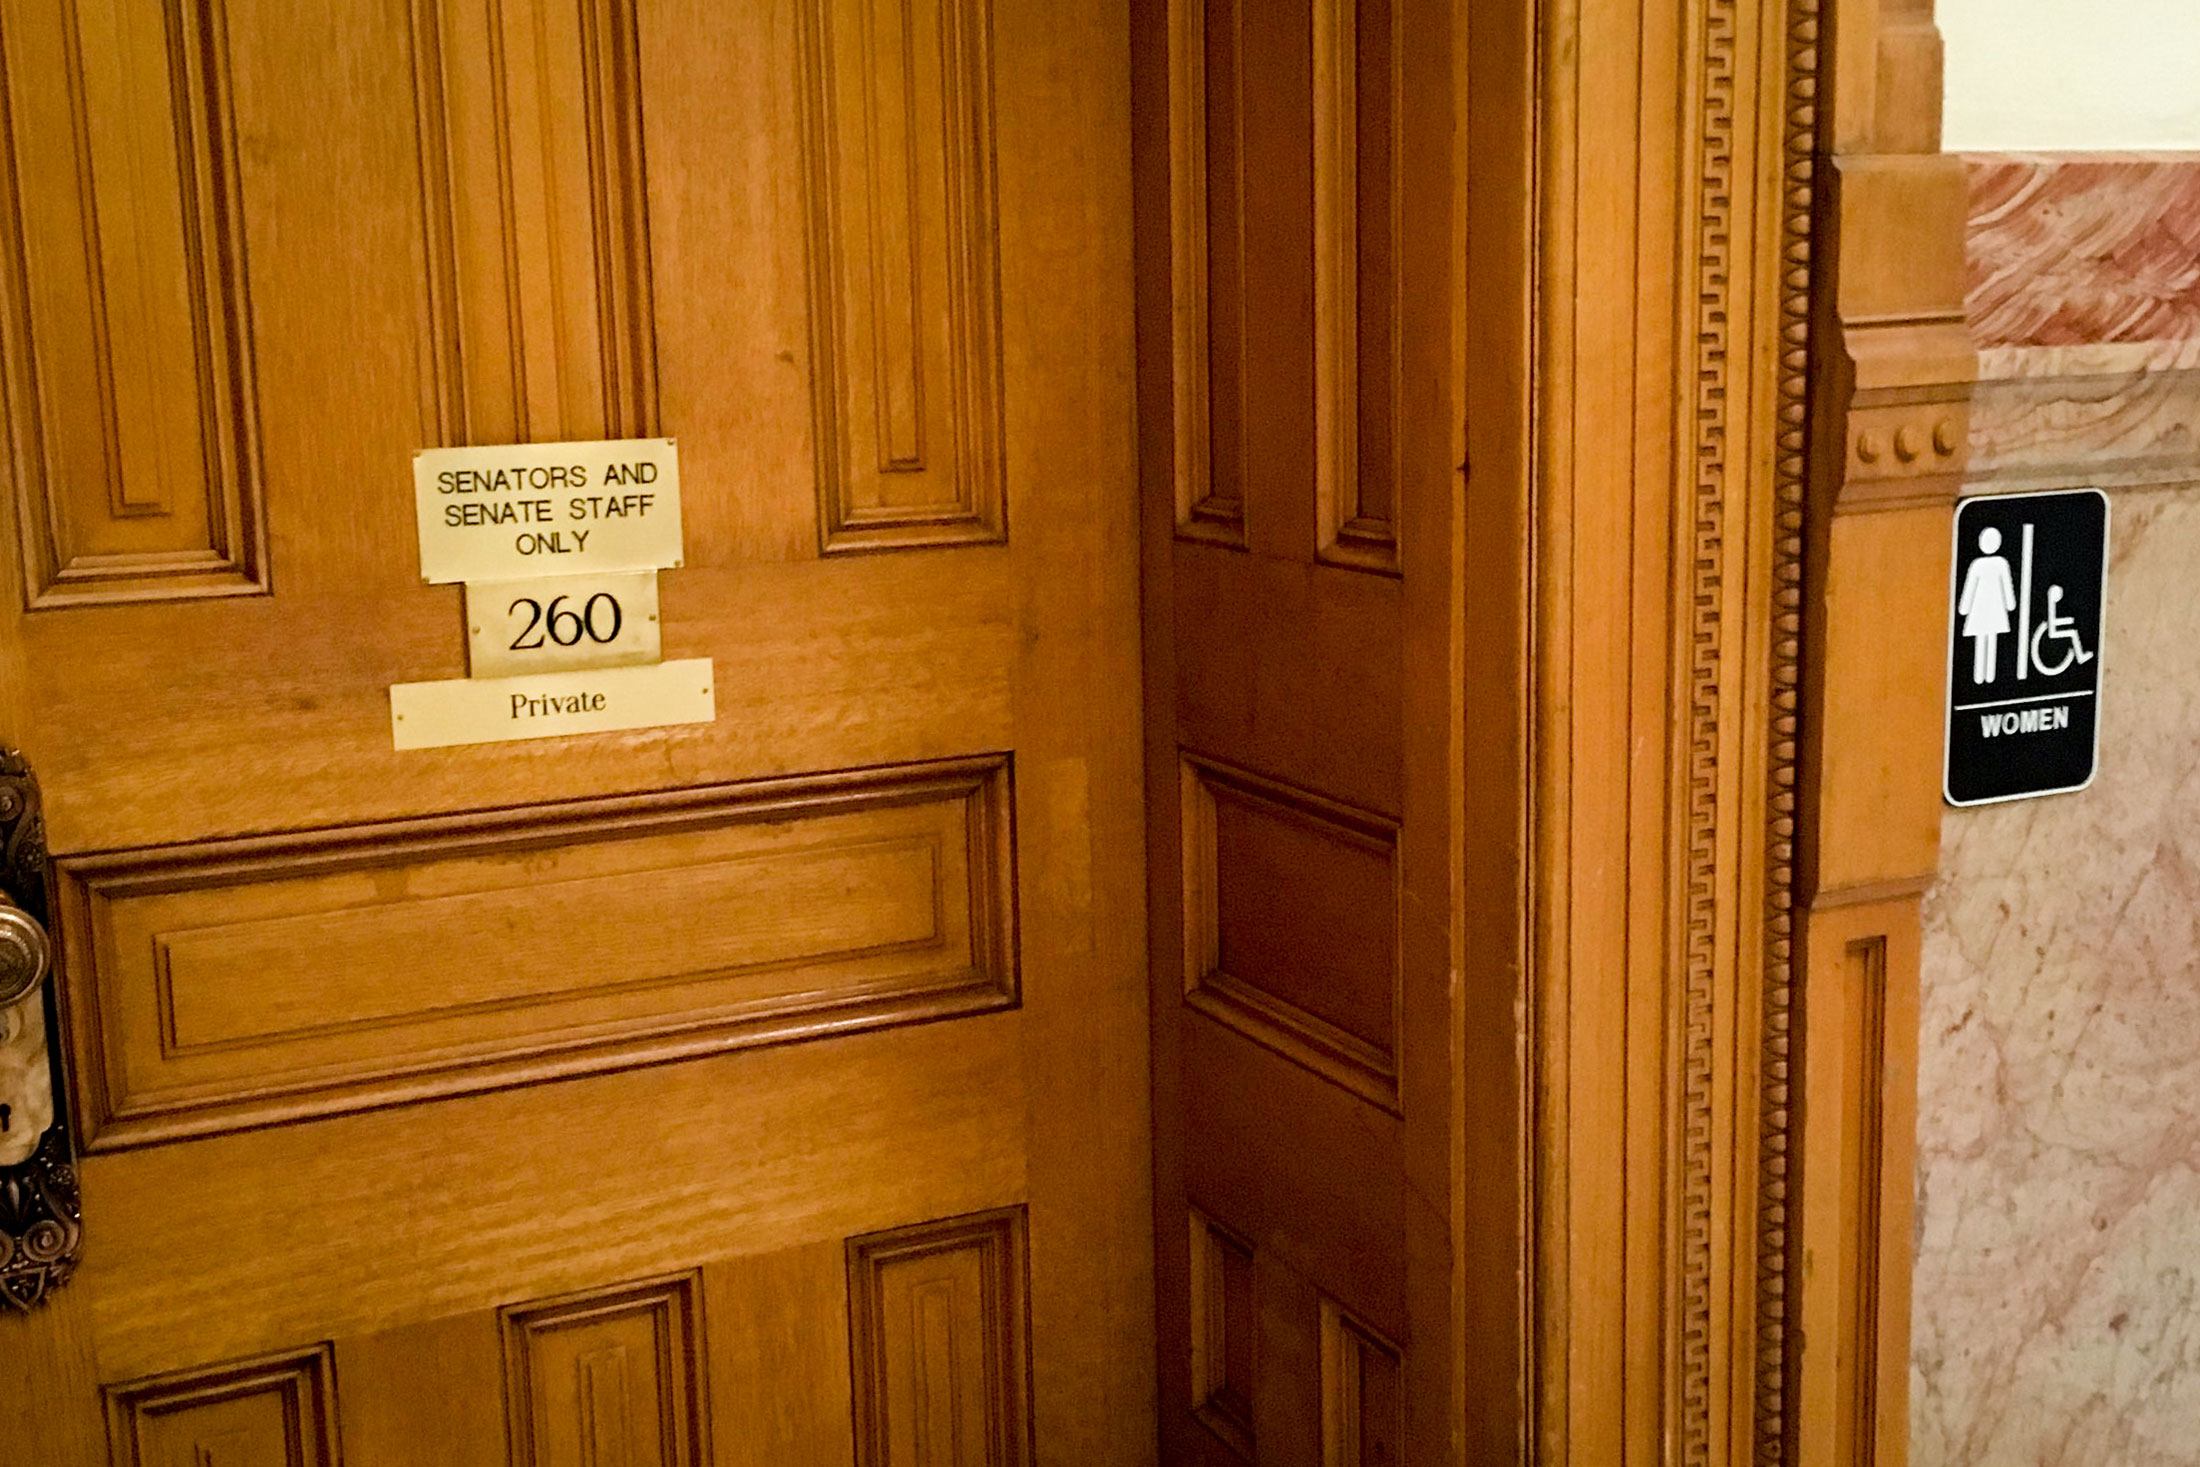 Photo: Senate Bathroom Door | New Women's Sign - BBirkeland